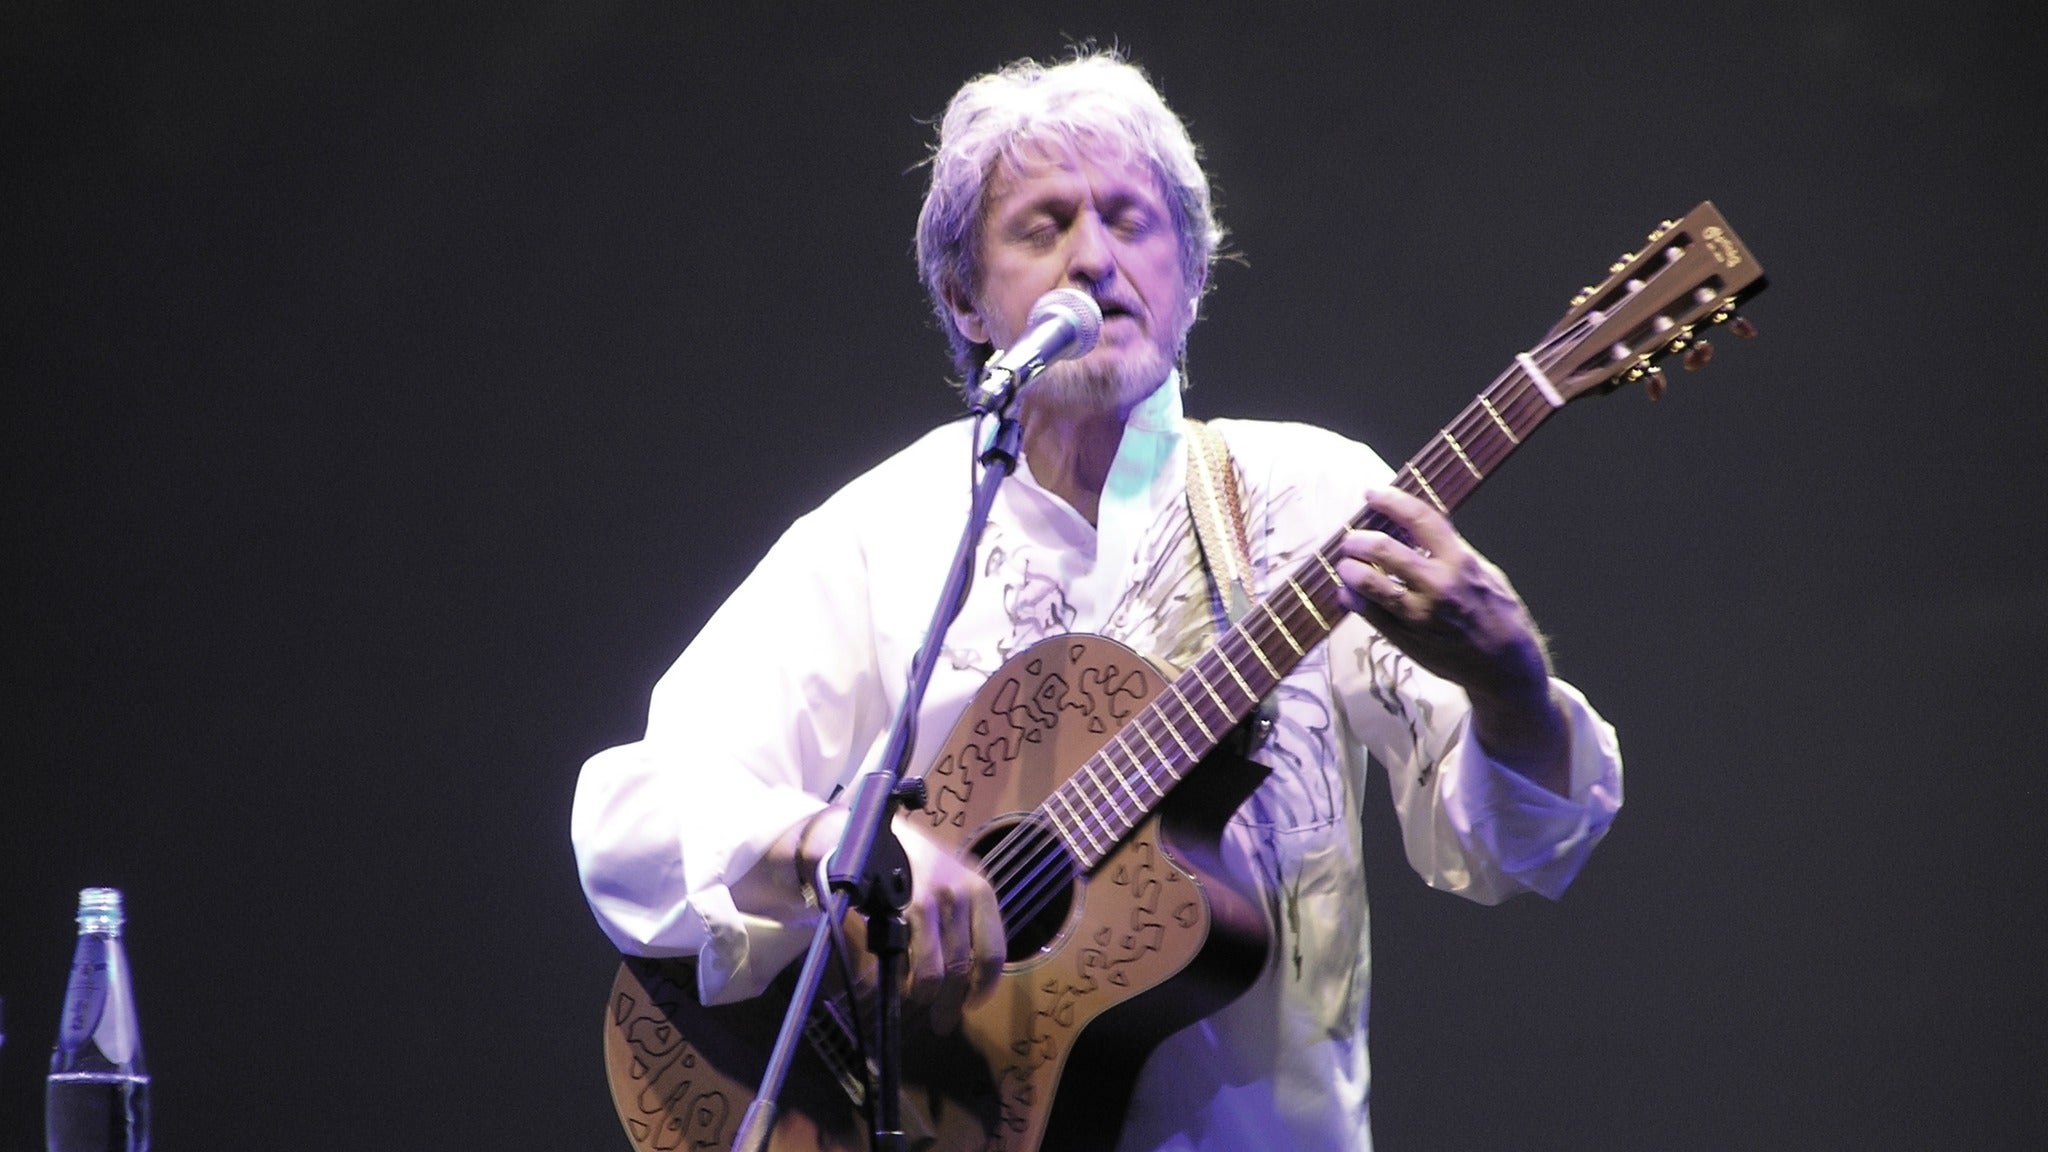 Anderson, Rabin, and Wakeman (ARW) at Toyota Oakdale Theatre